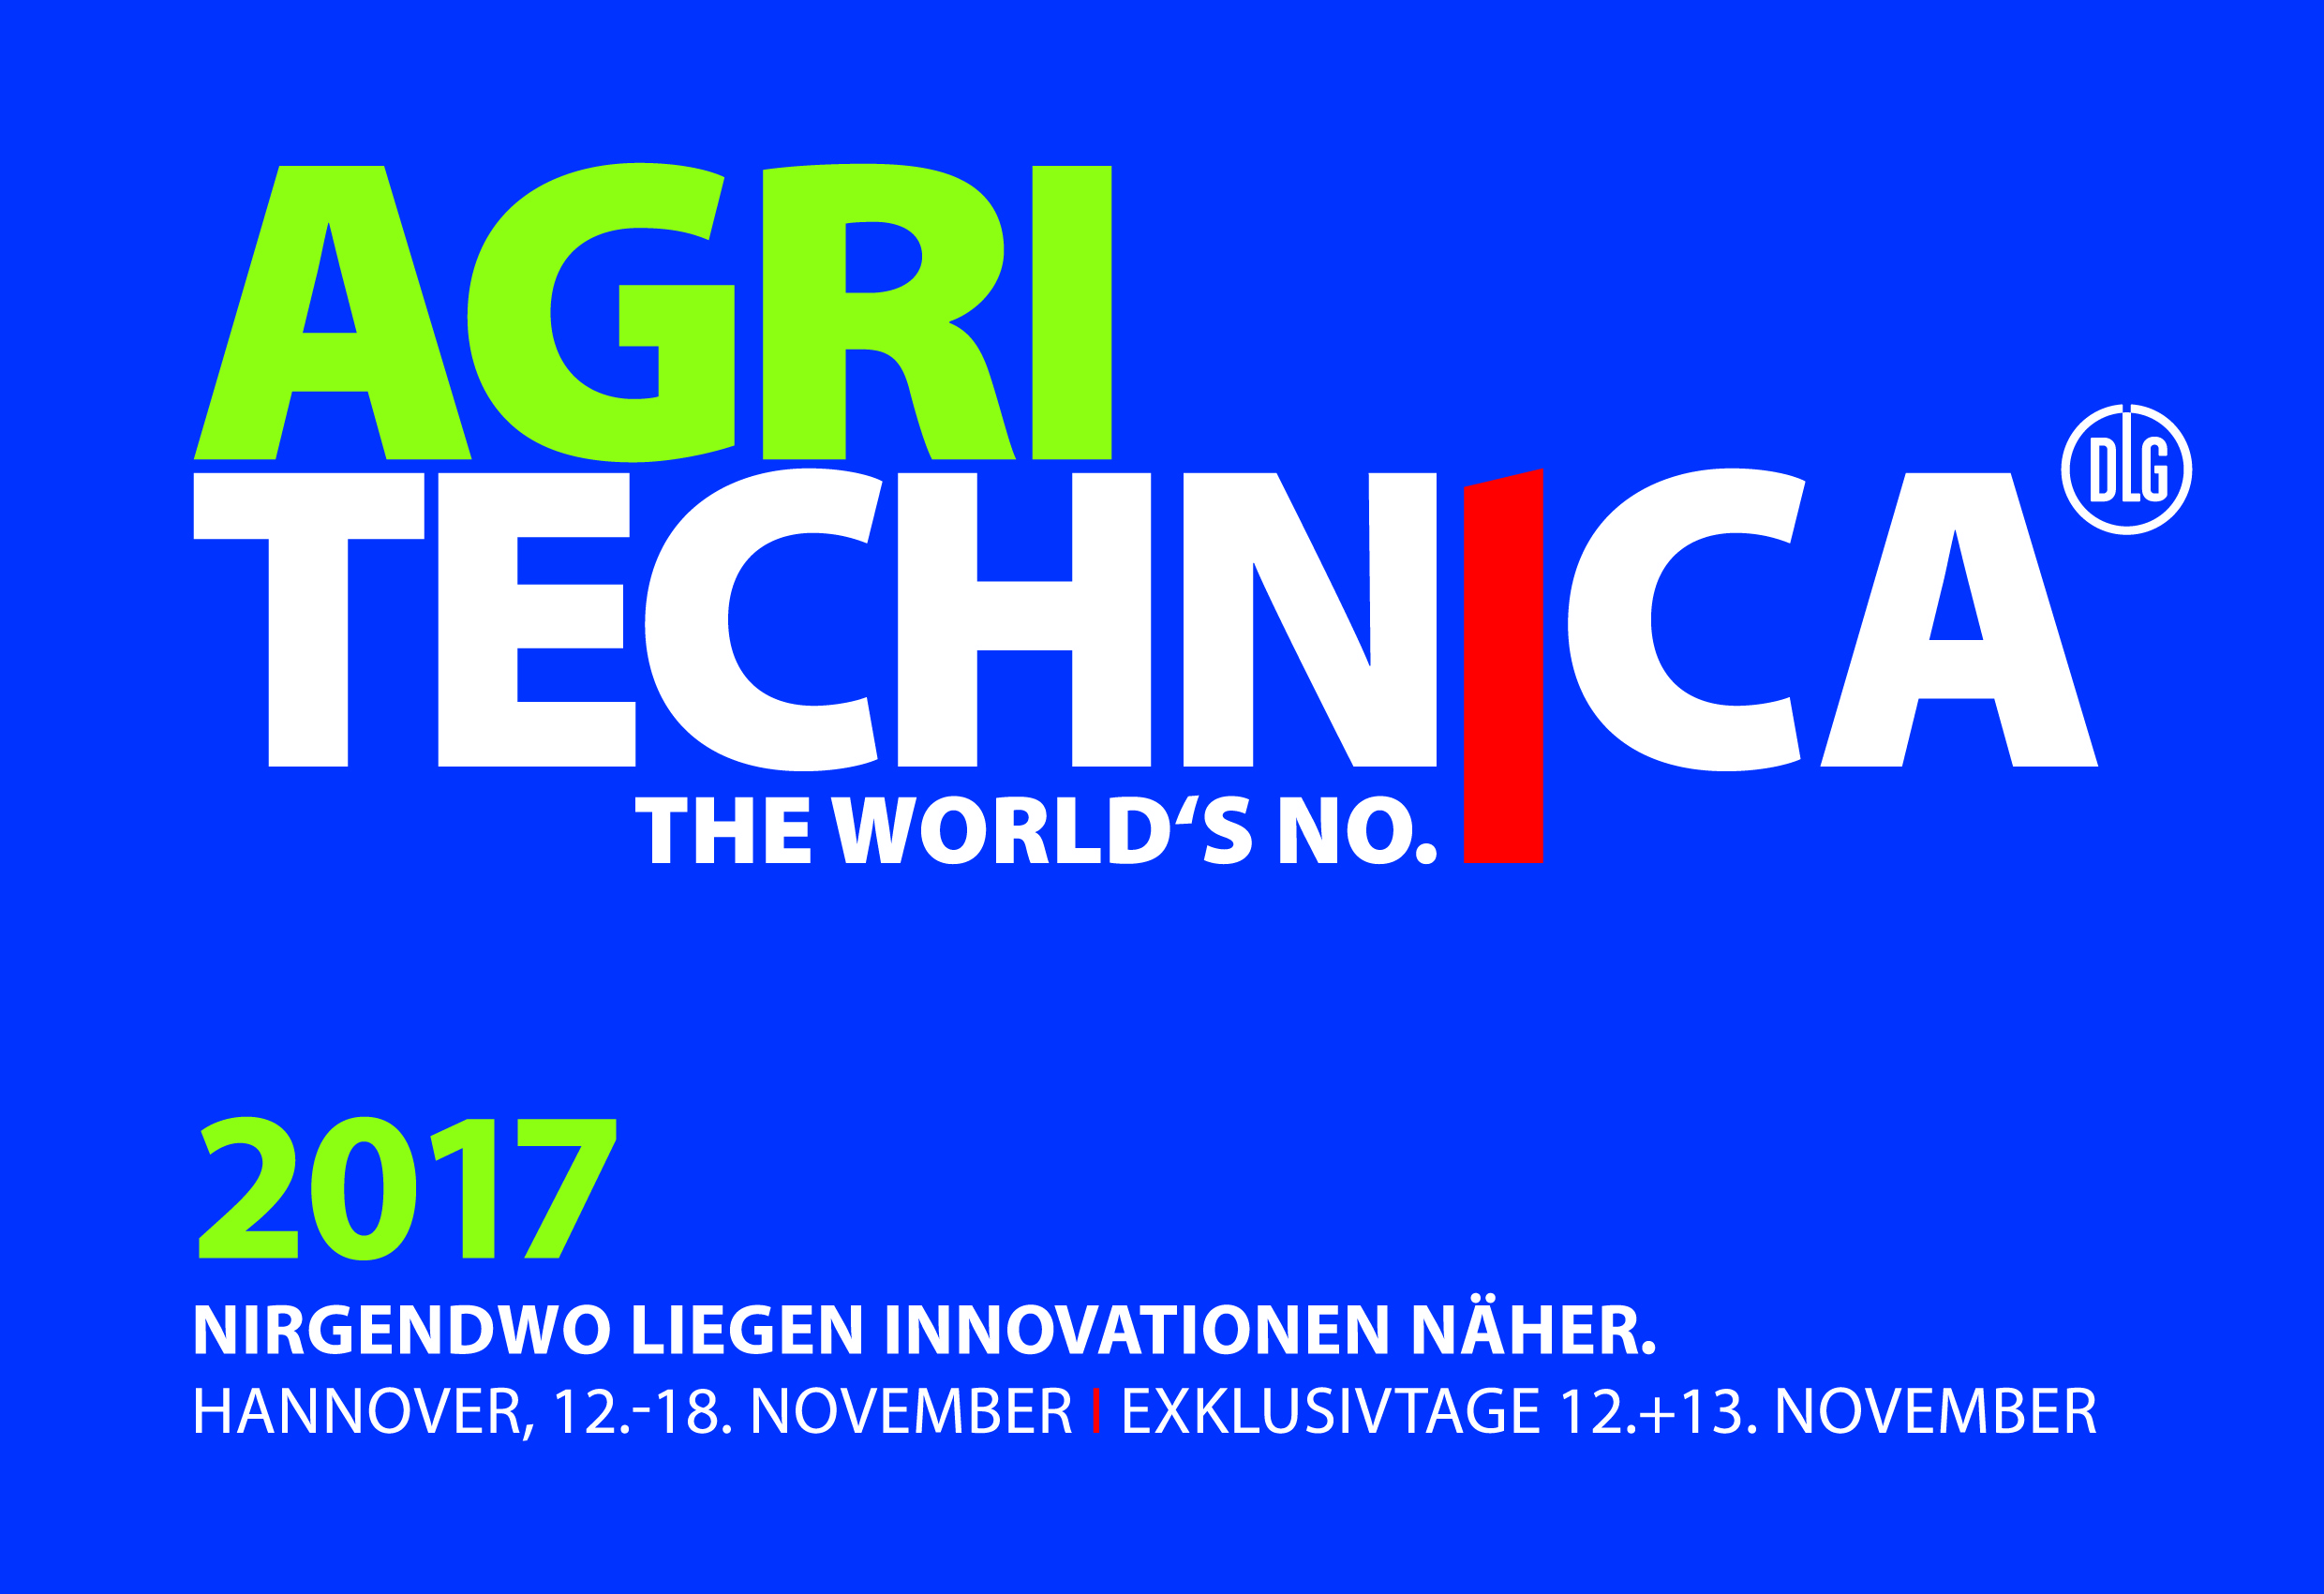 Bellota in Agritechnica (12-18 Nov.) Hall 11 A11